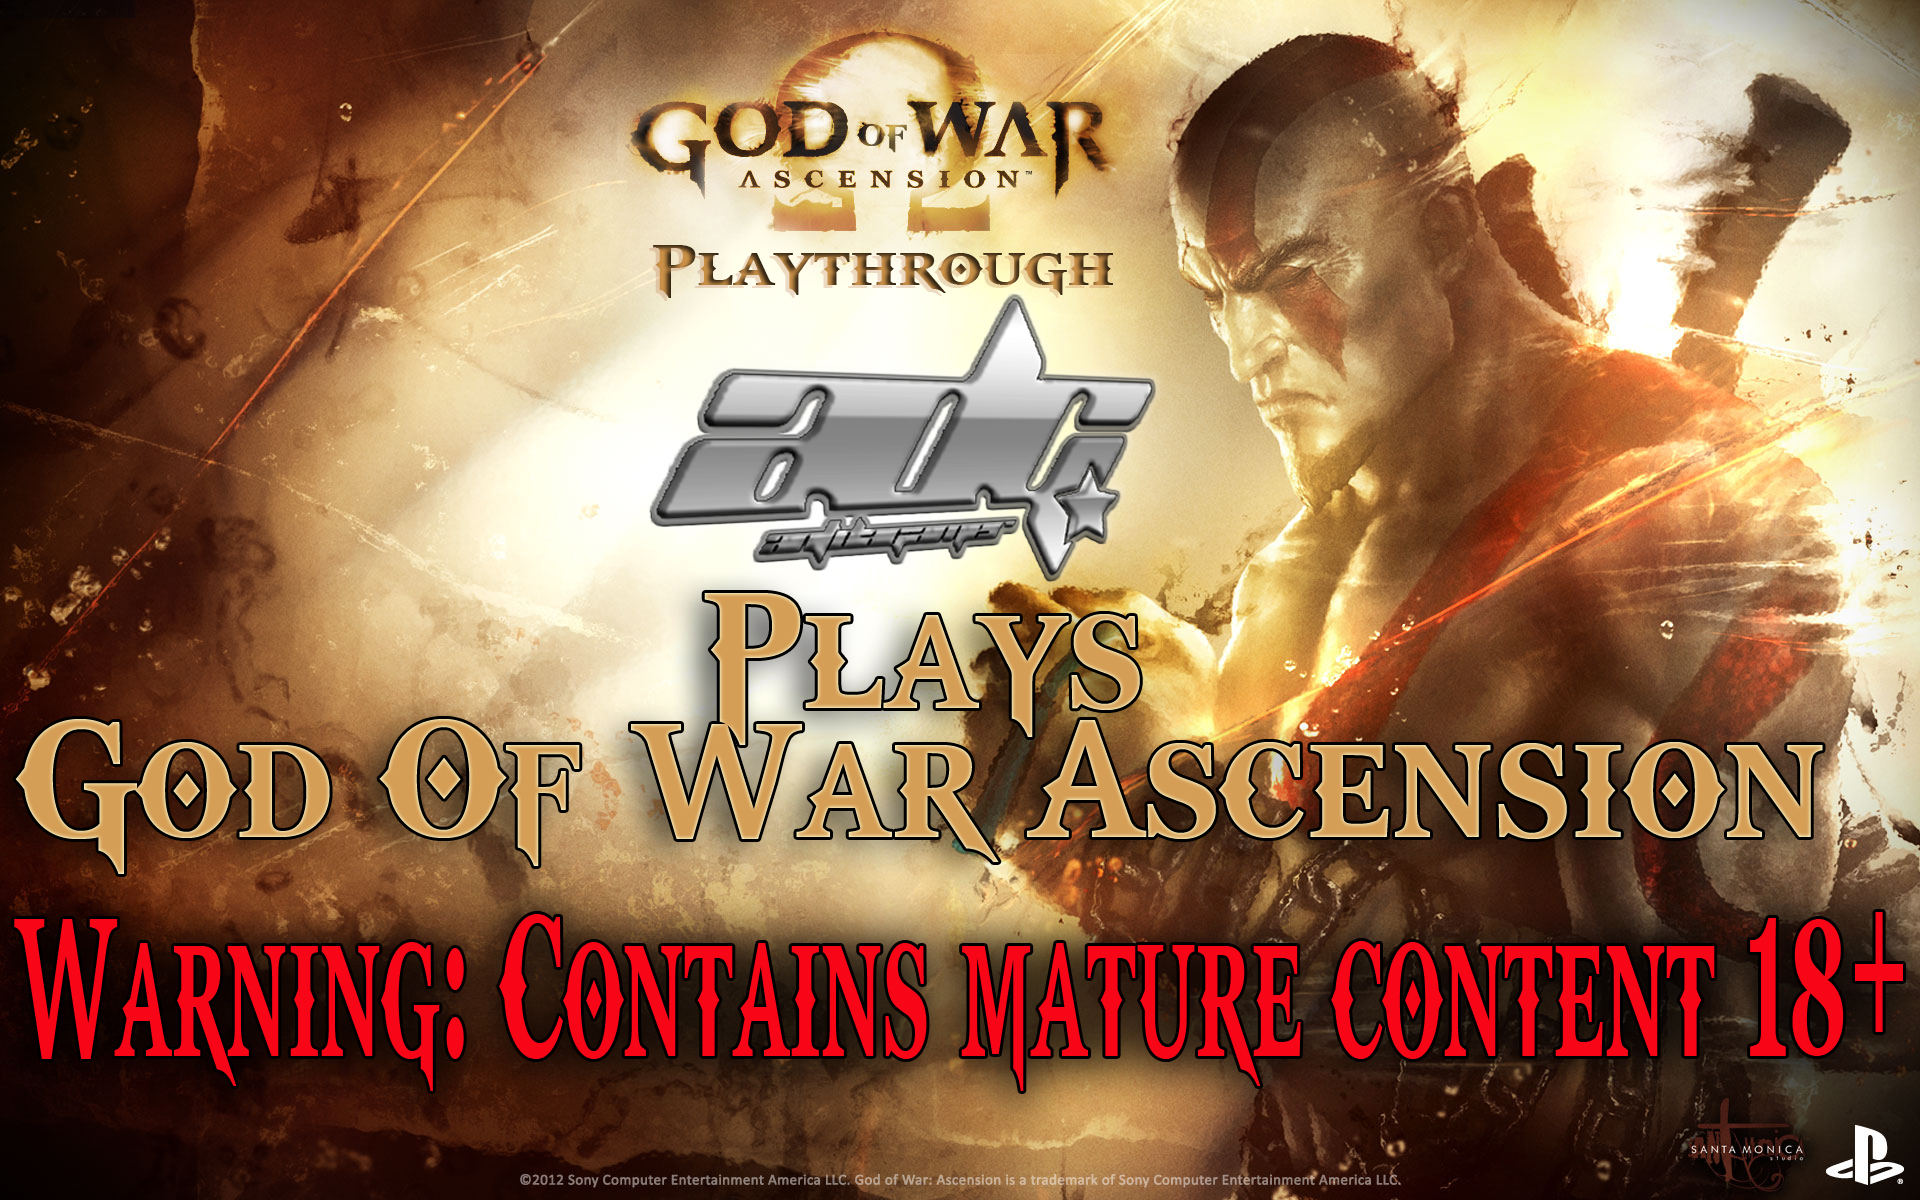 gow-ascensionadgplays